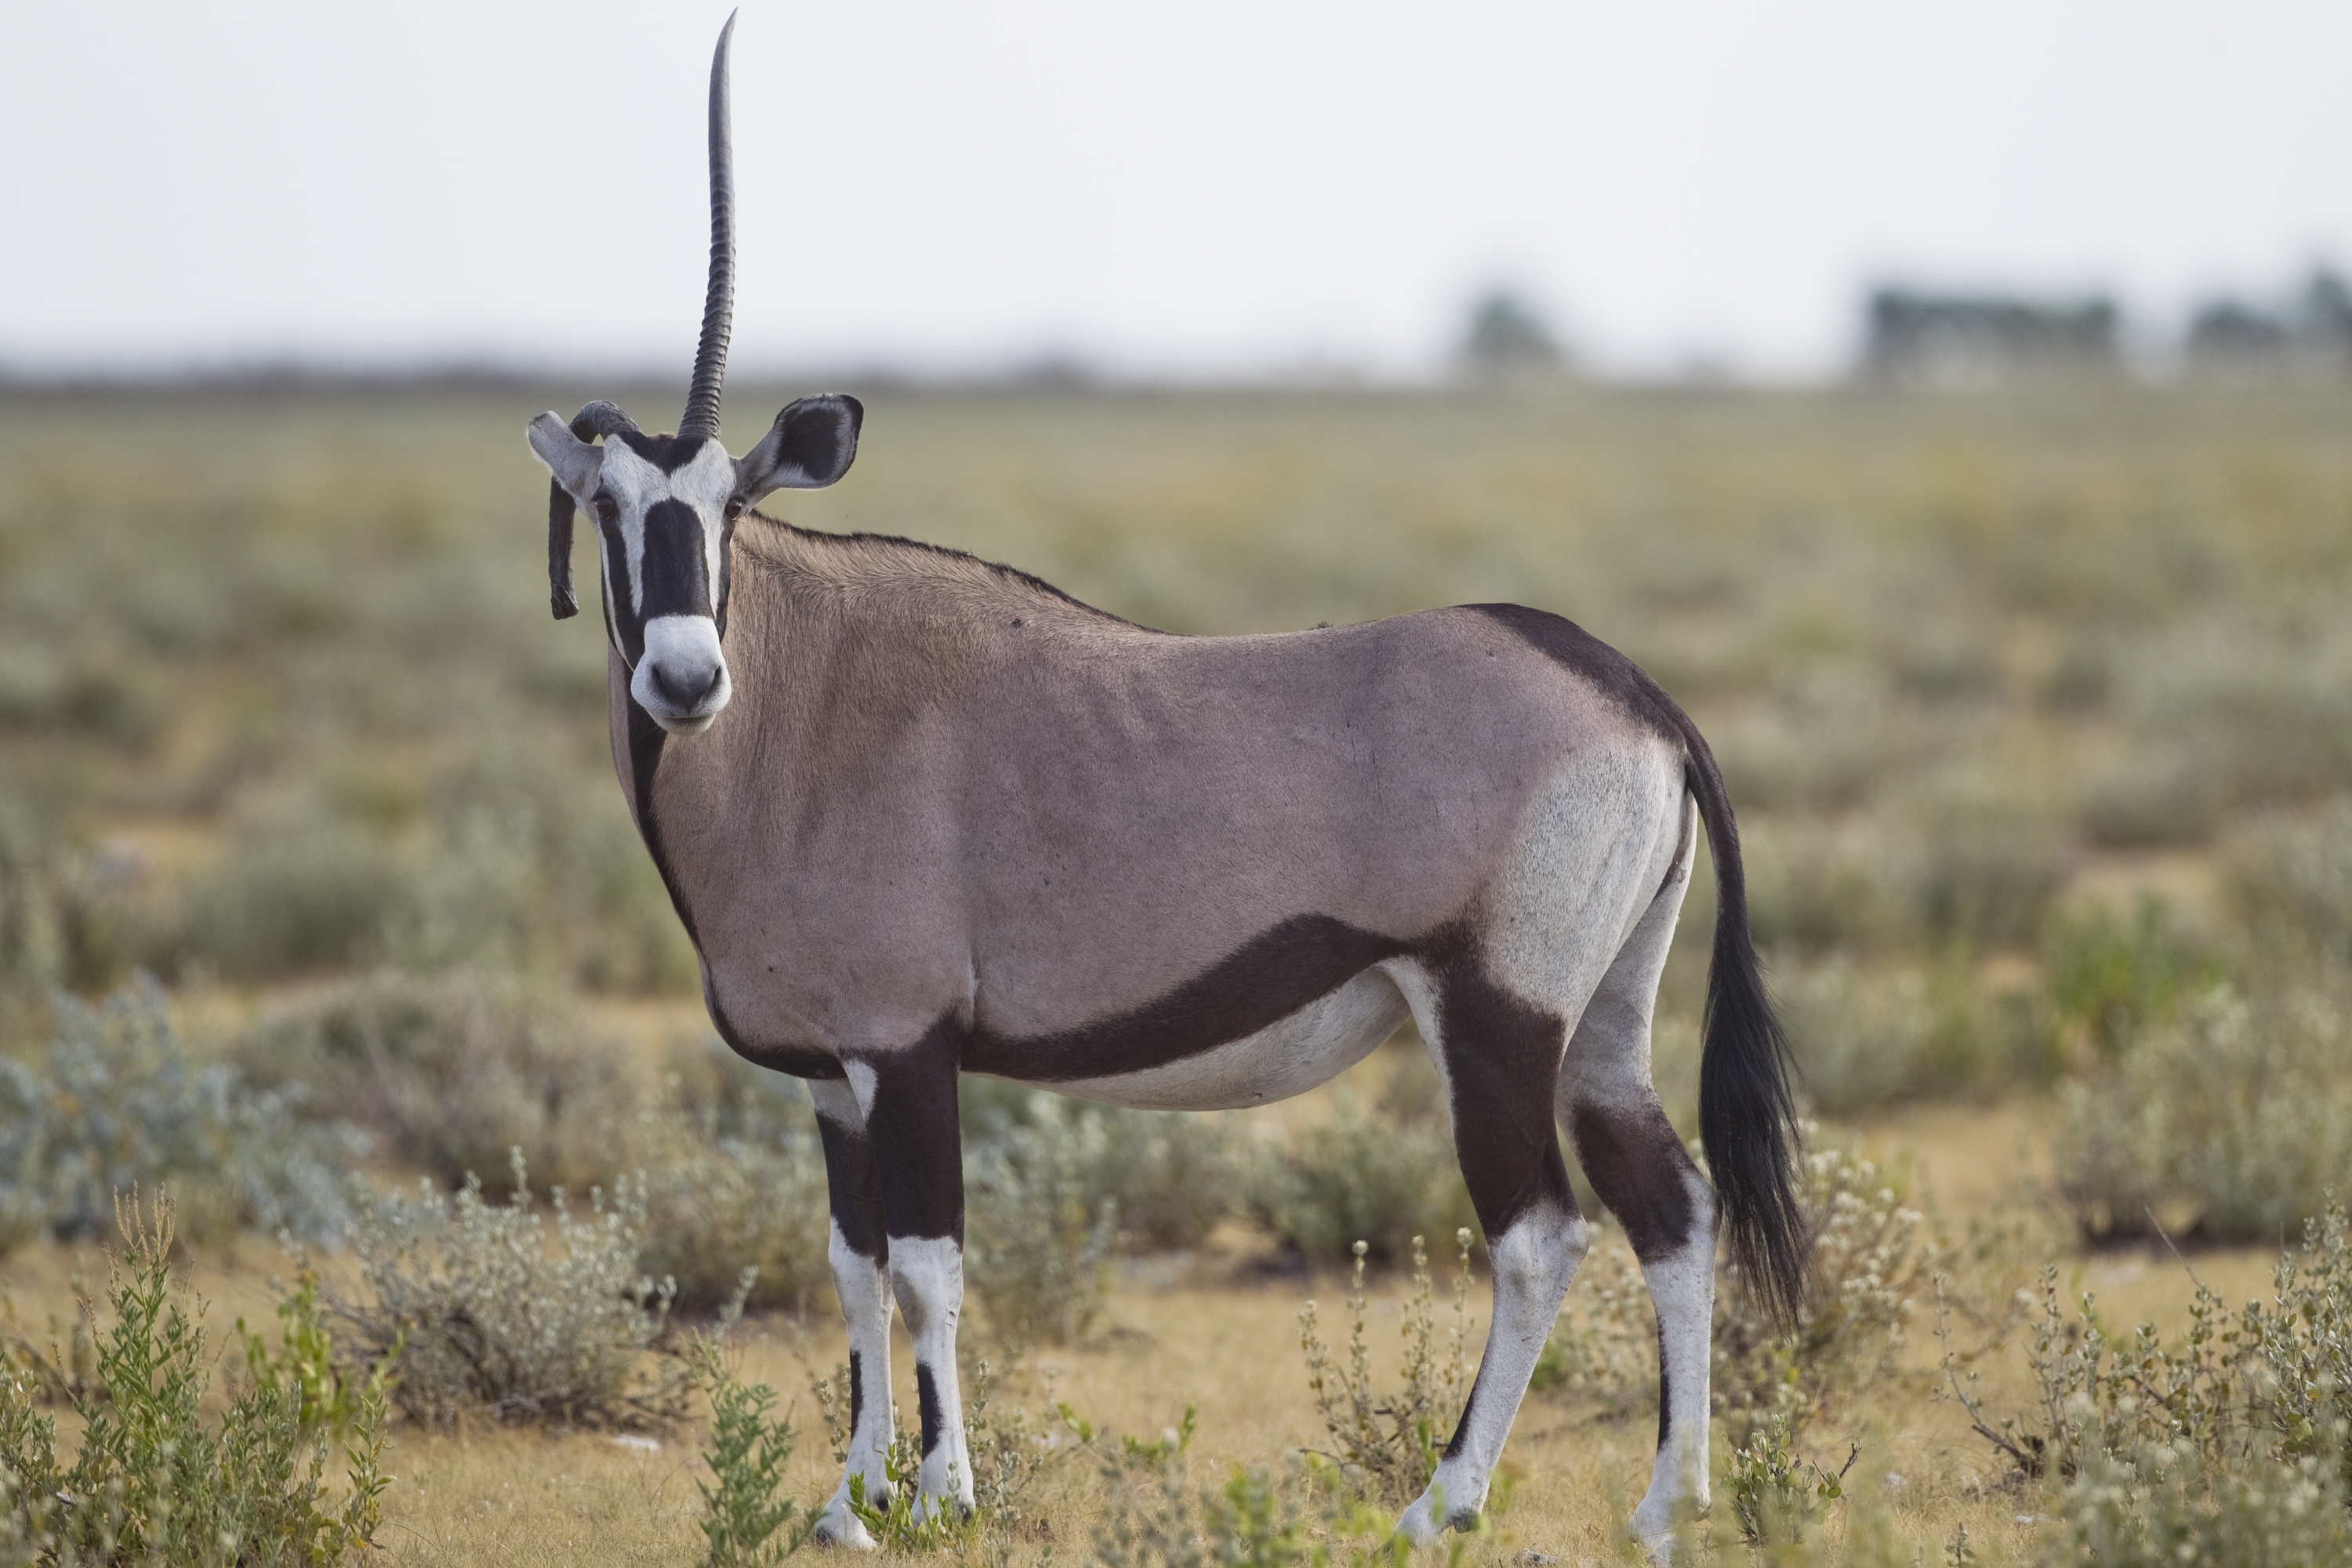 File:Oryx gazella (unicorn).jpg - Wikimedia Commons